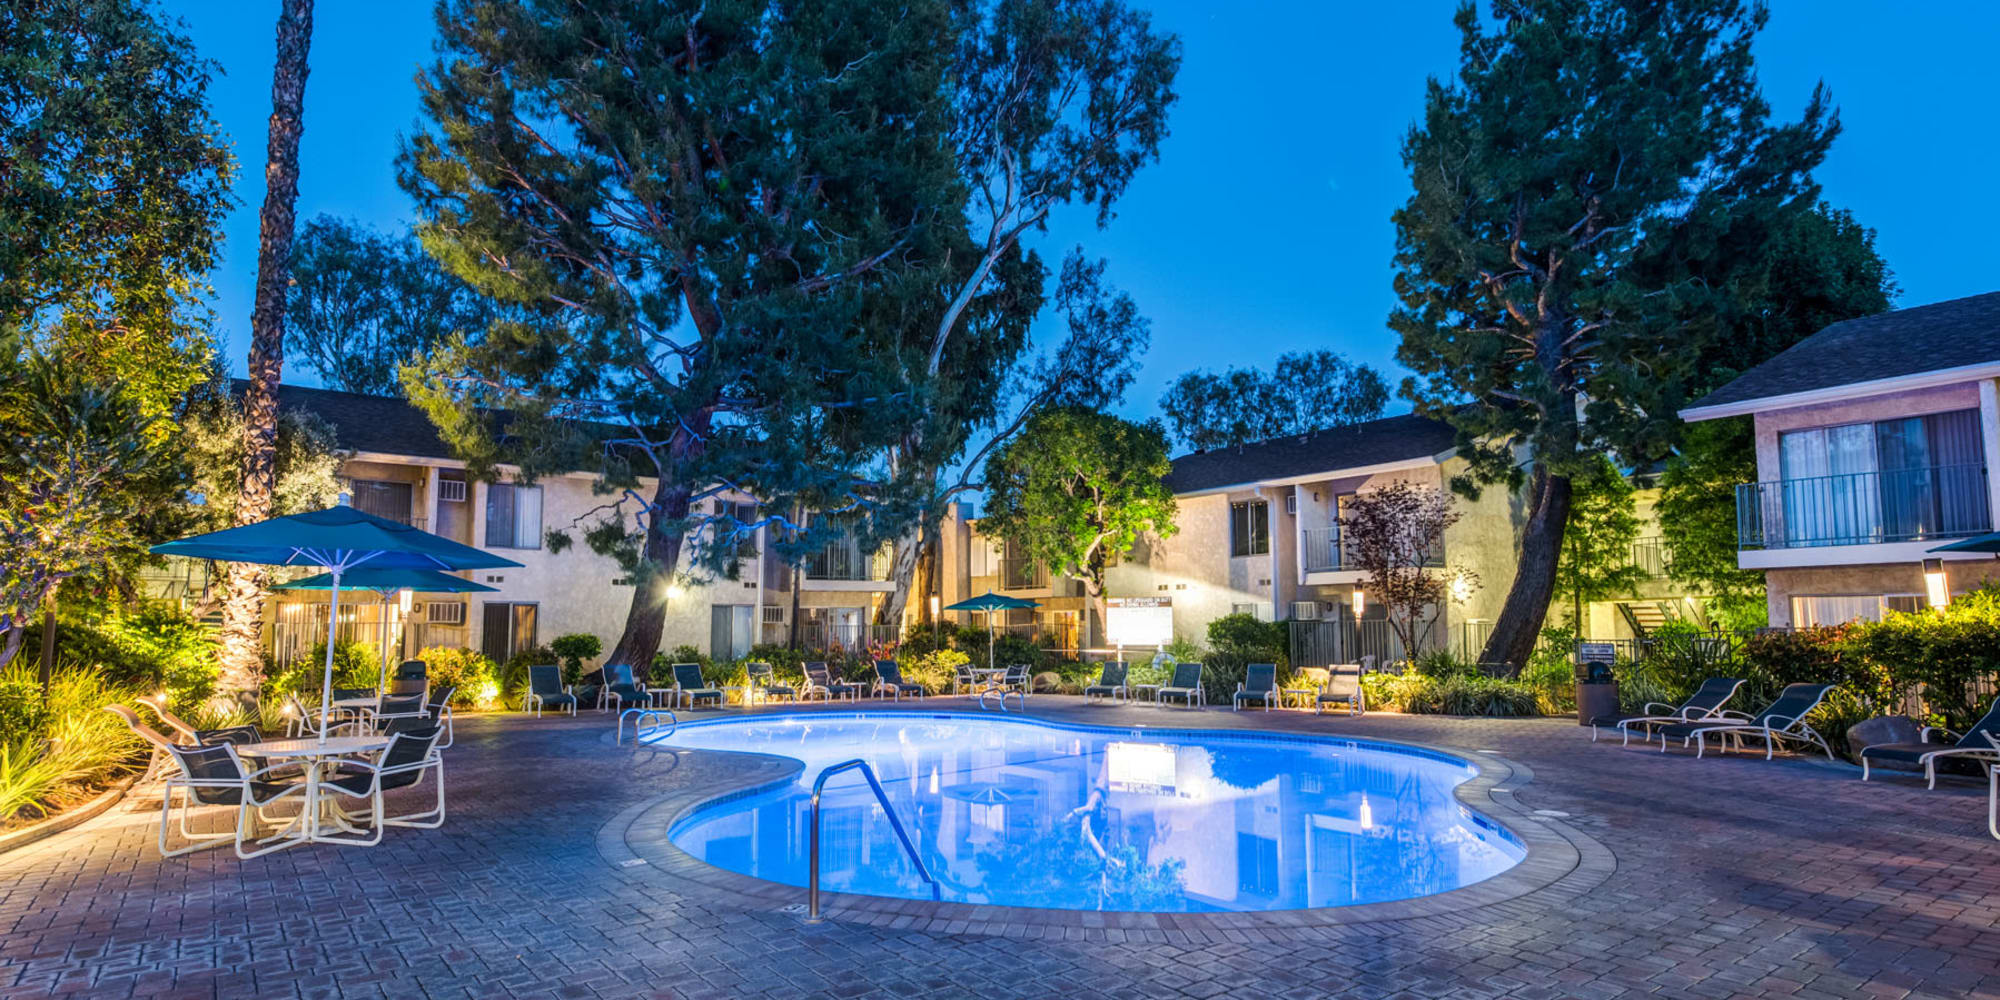 Dusk at the swimming pool area with the community's evening lights on at Village Pointe in Northridge, California